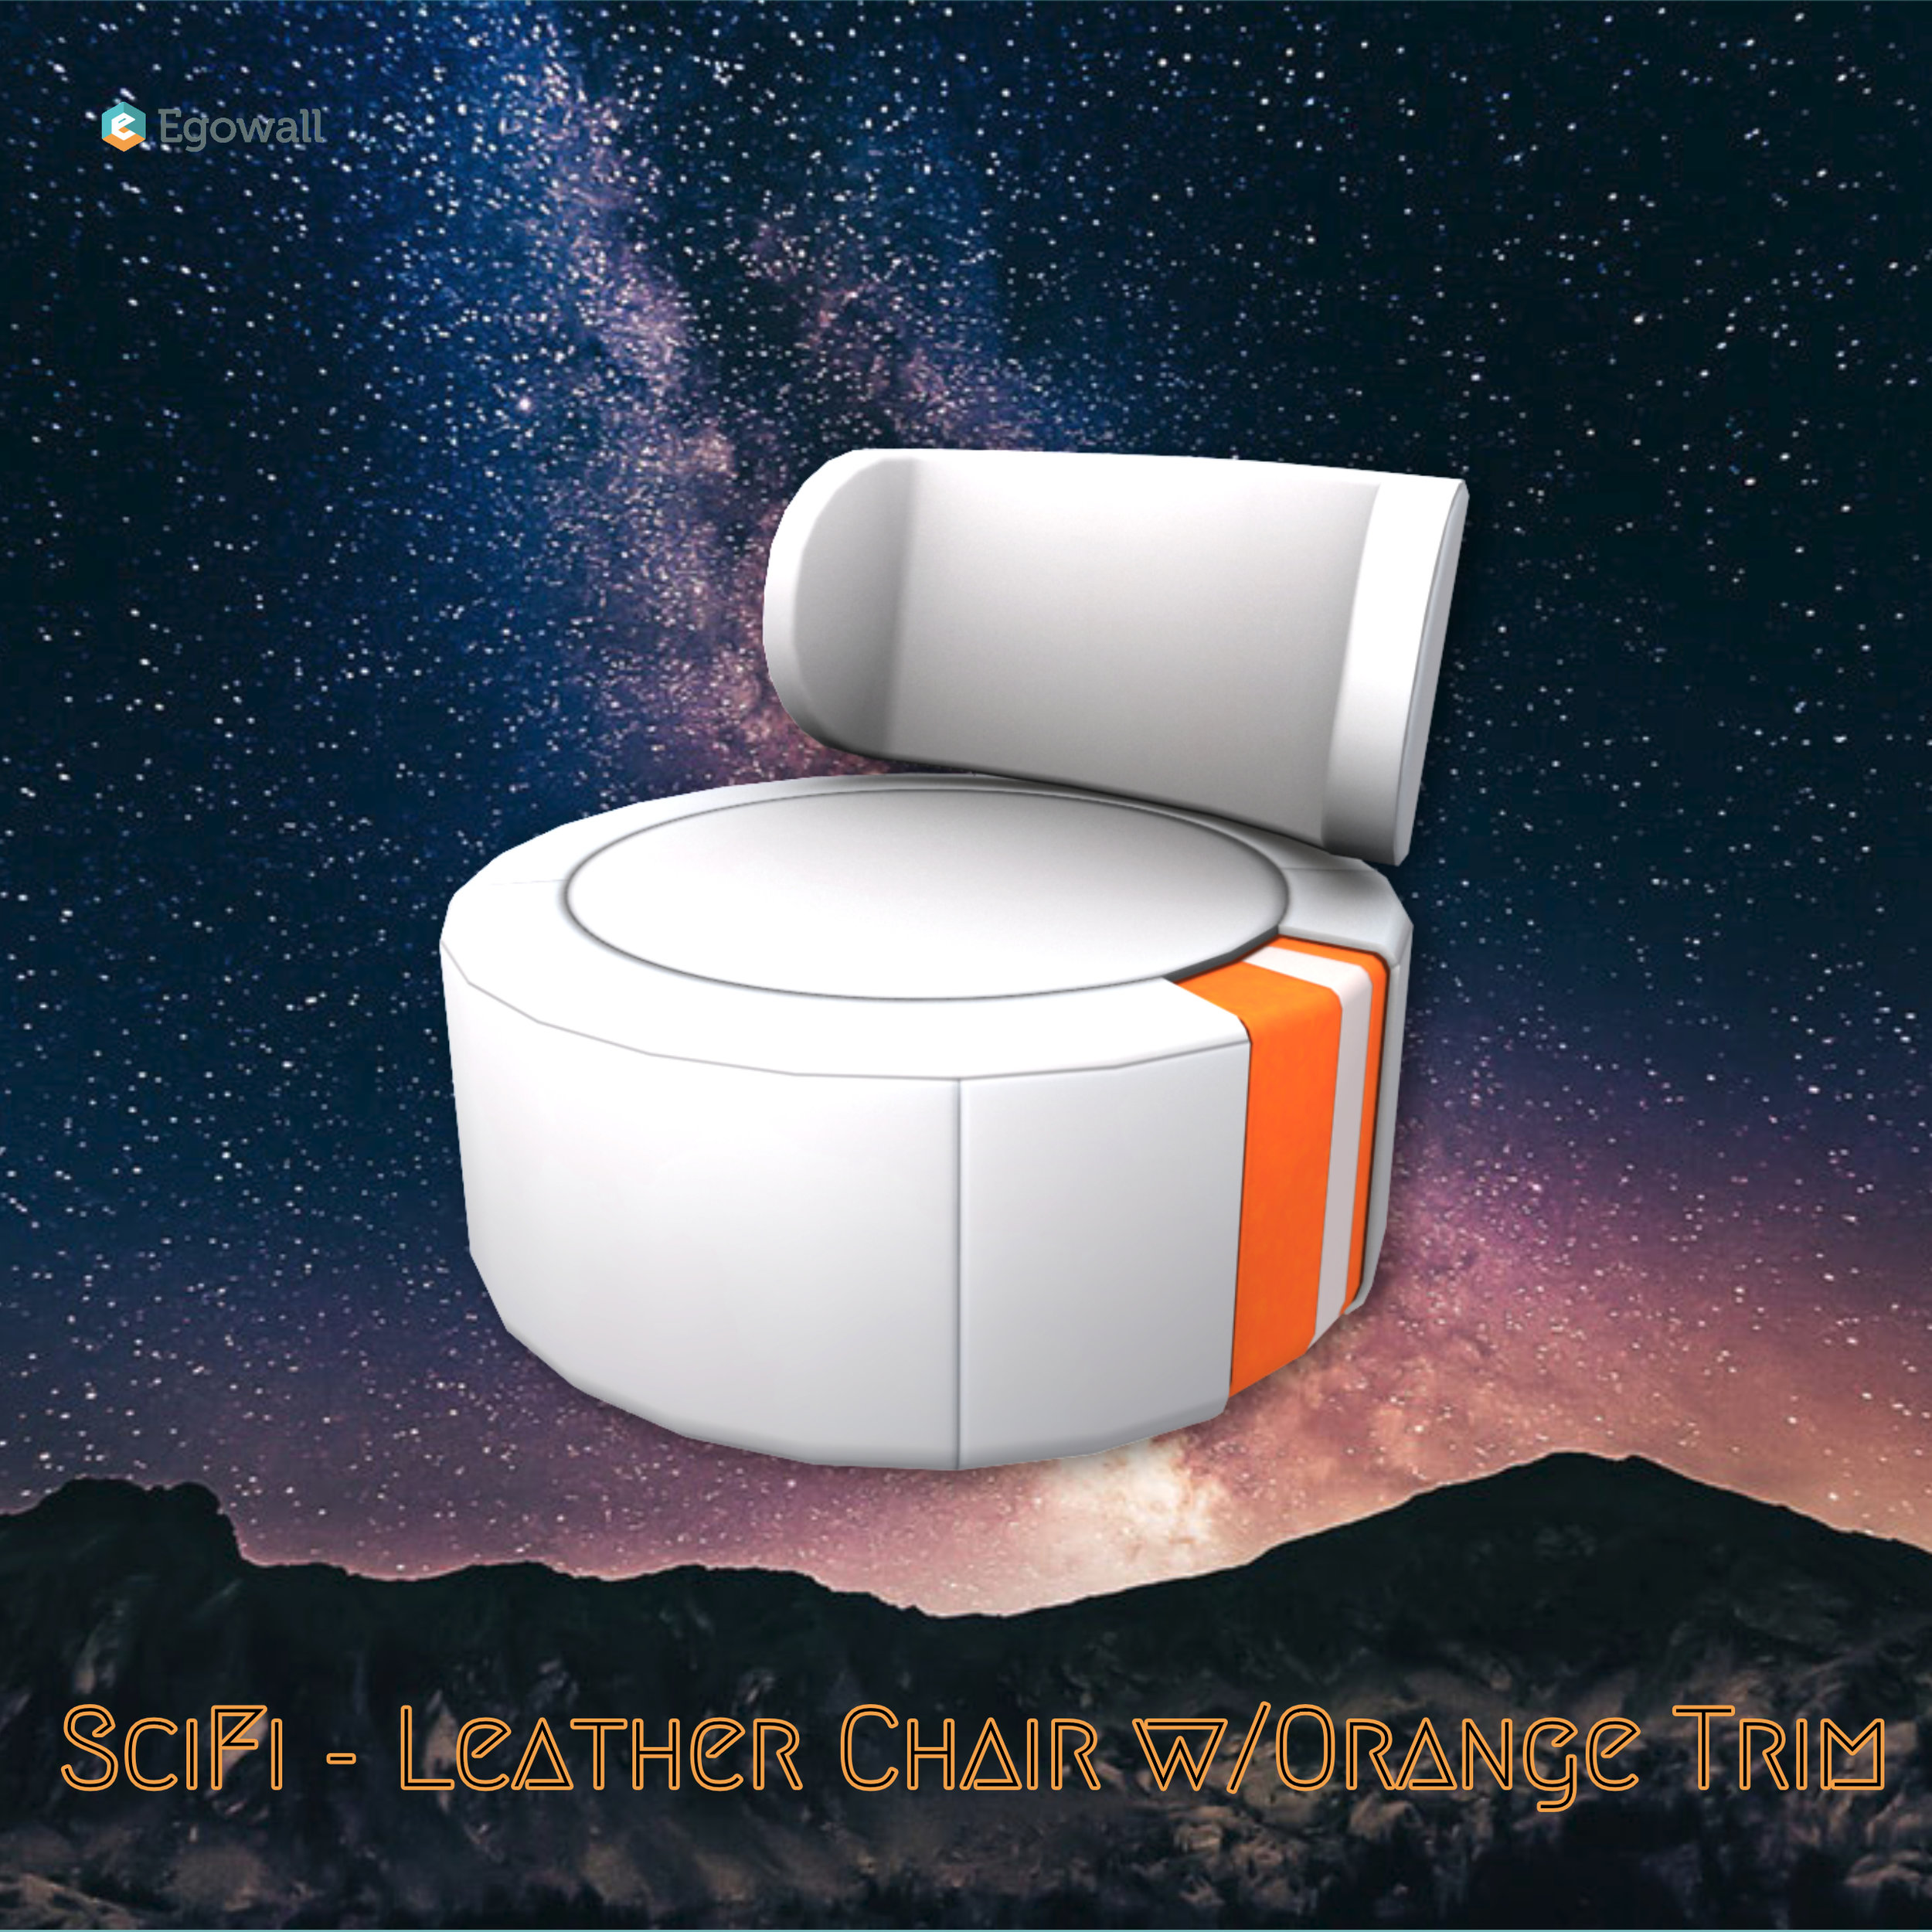 SciFi - Leather Chair w_Orange.Instagram.jpg